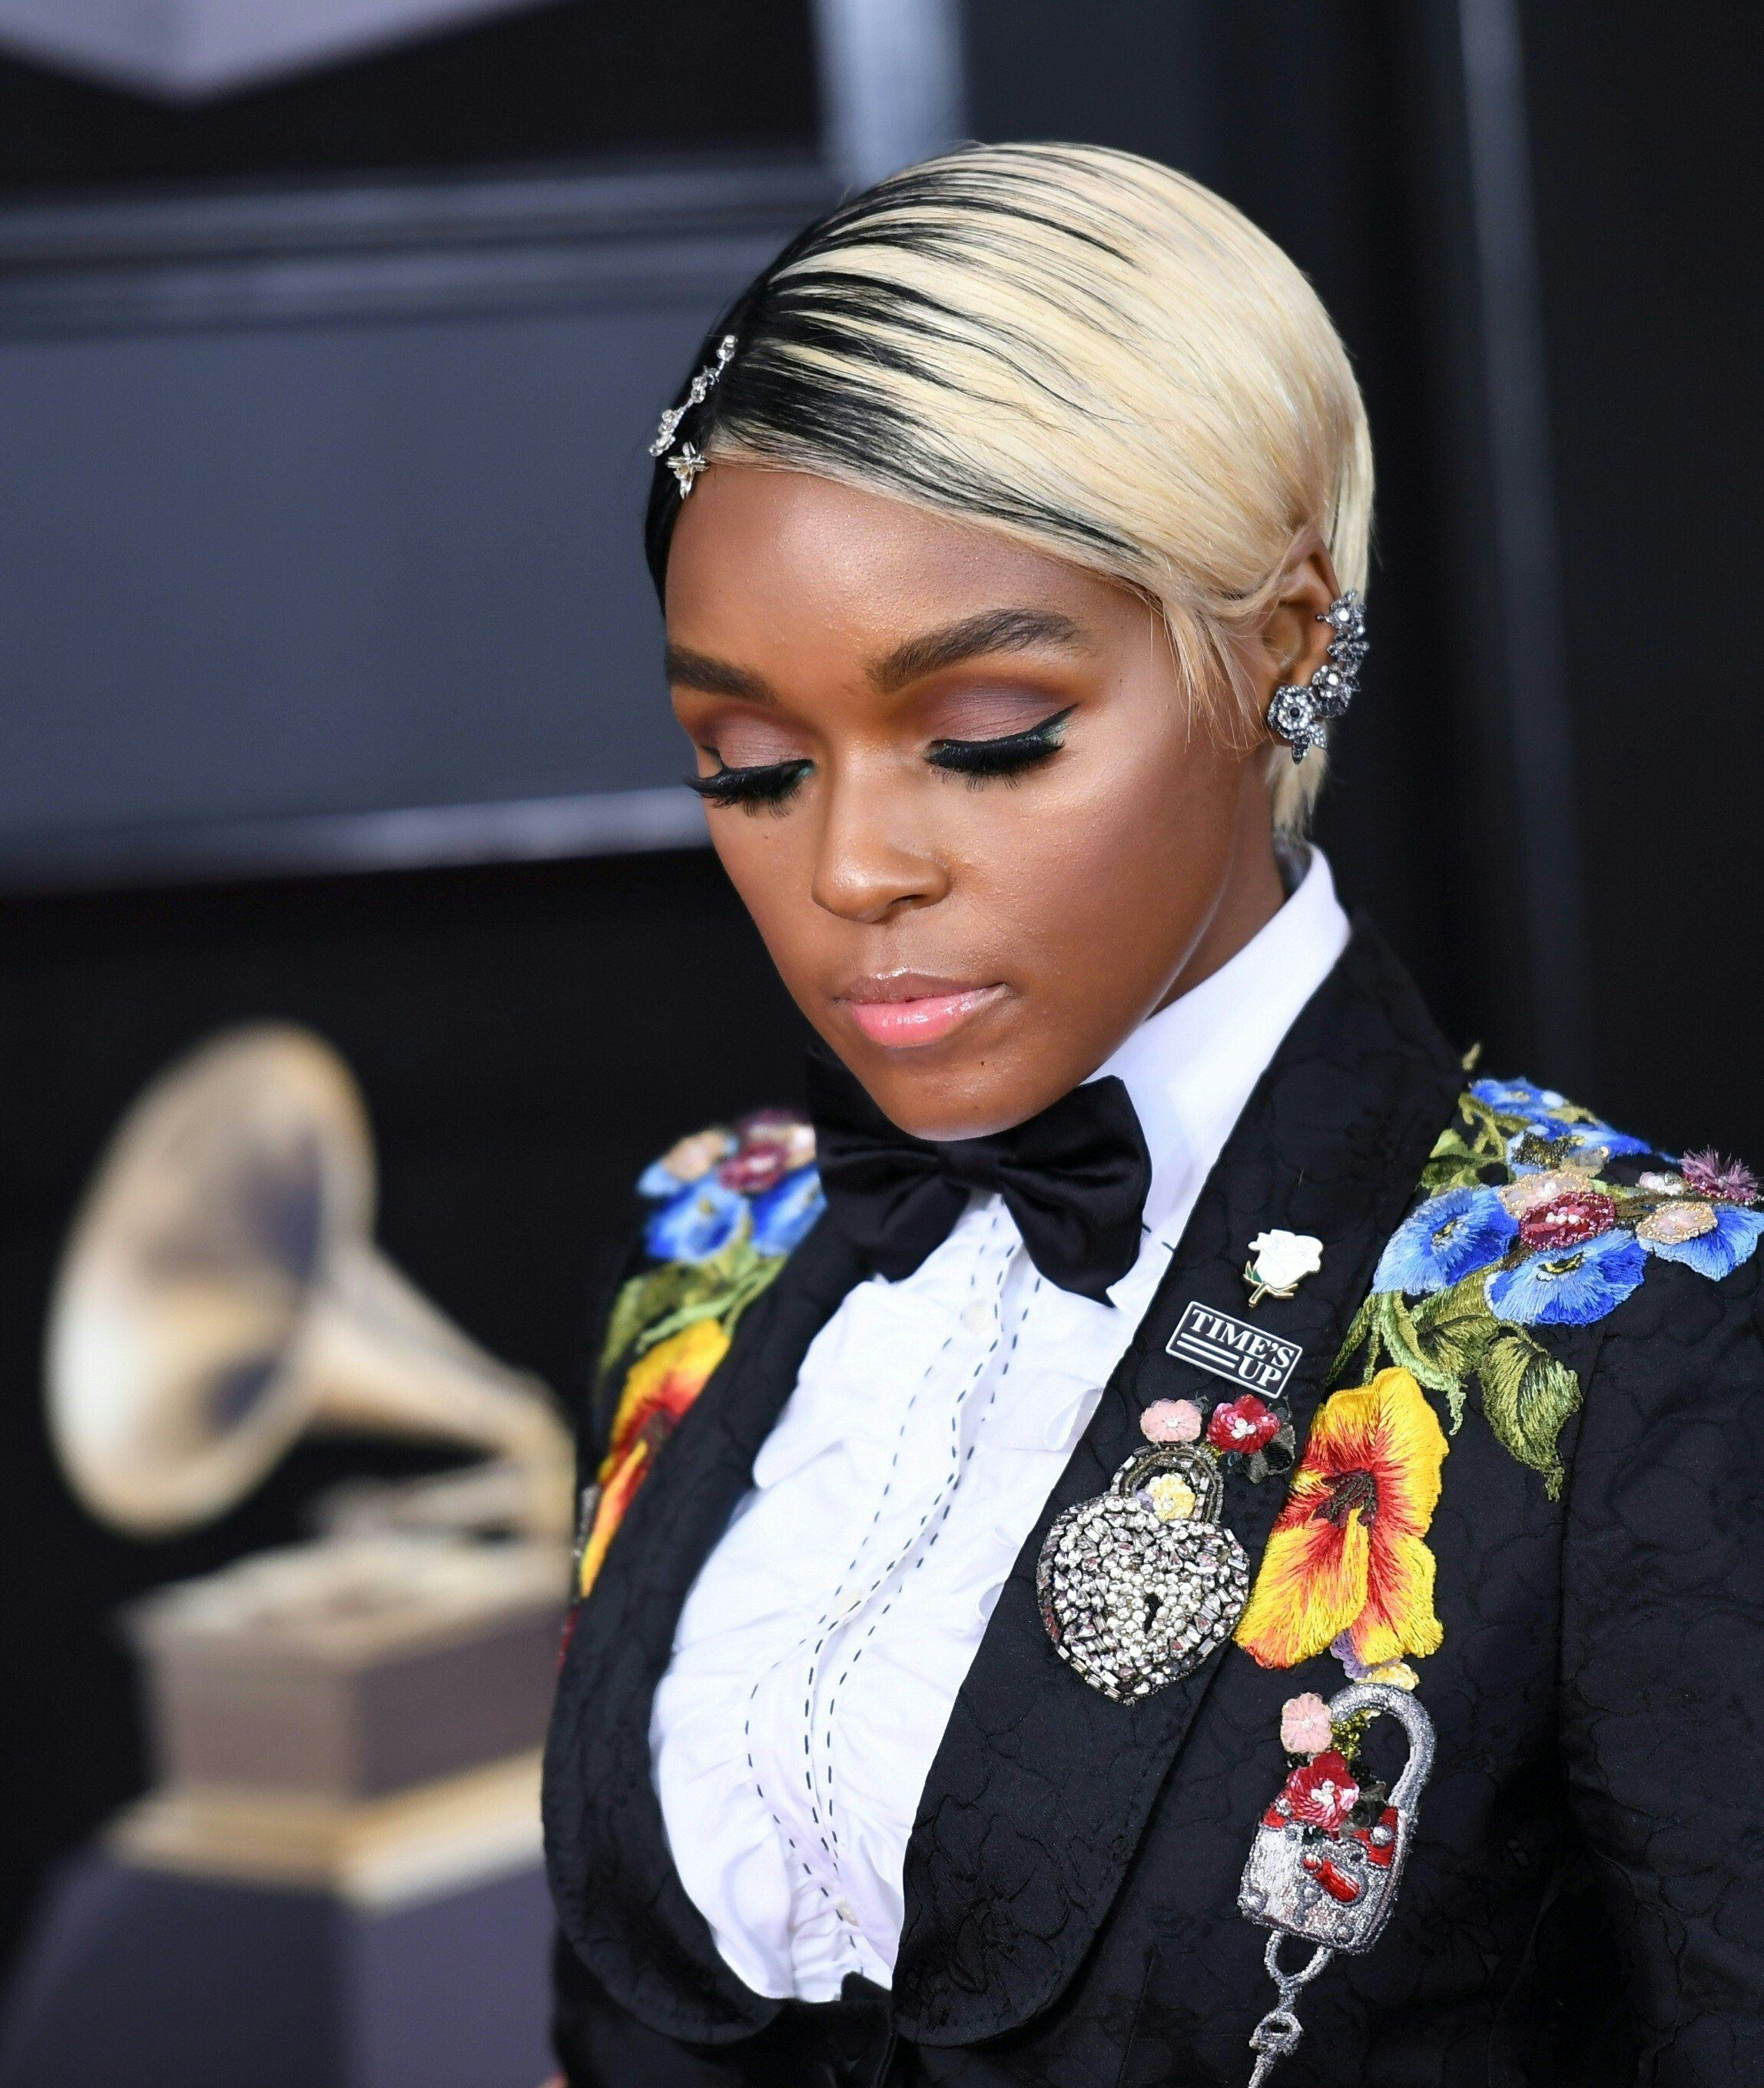 Janelle Monae arrives for the 60th Grammy Awards on January 28, 2018, in New York.  / AFP PHOTO / ANGELA WEISS        (Photo credit should read ANGELA WEISS/AFP/Getty Images)